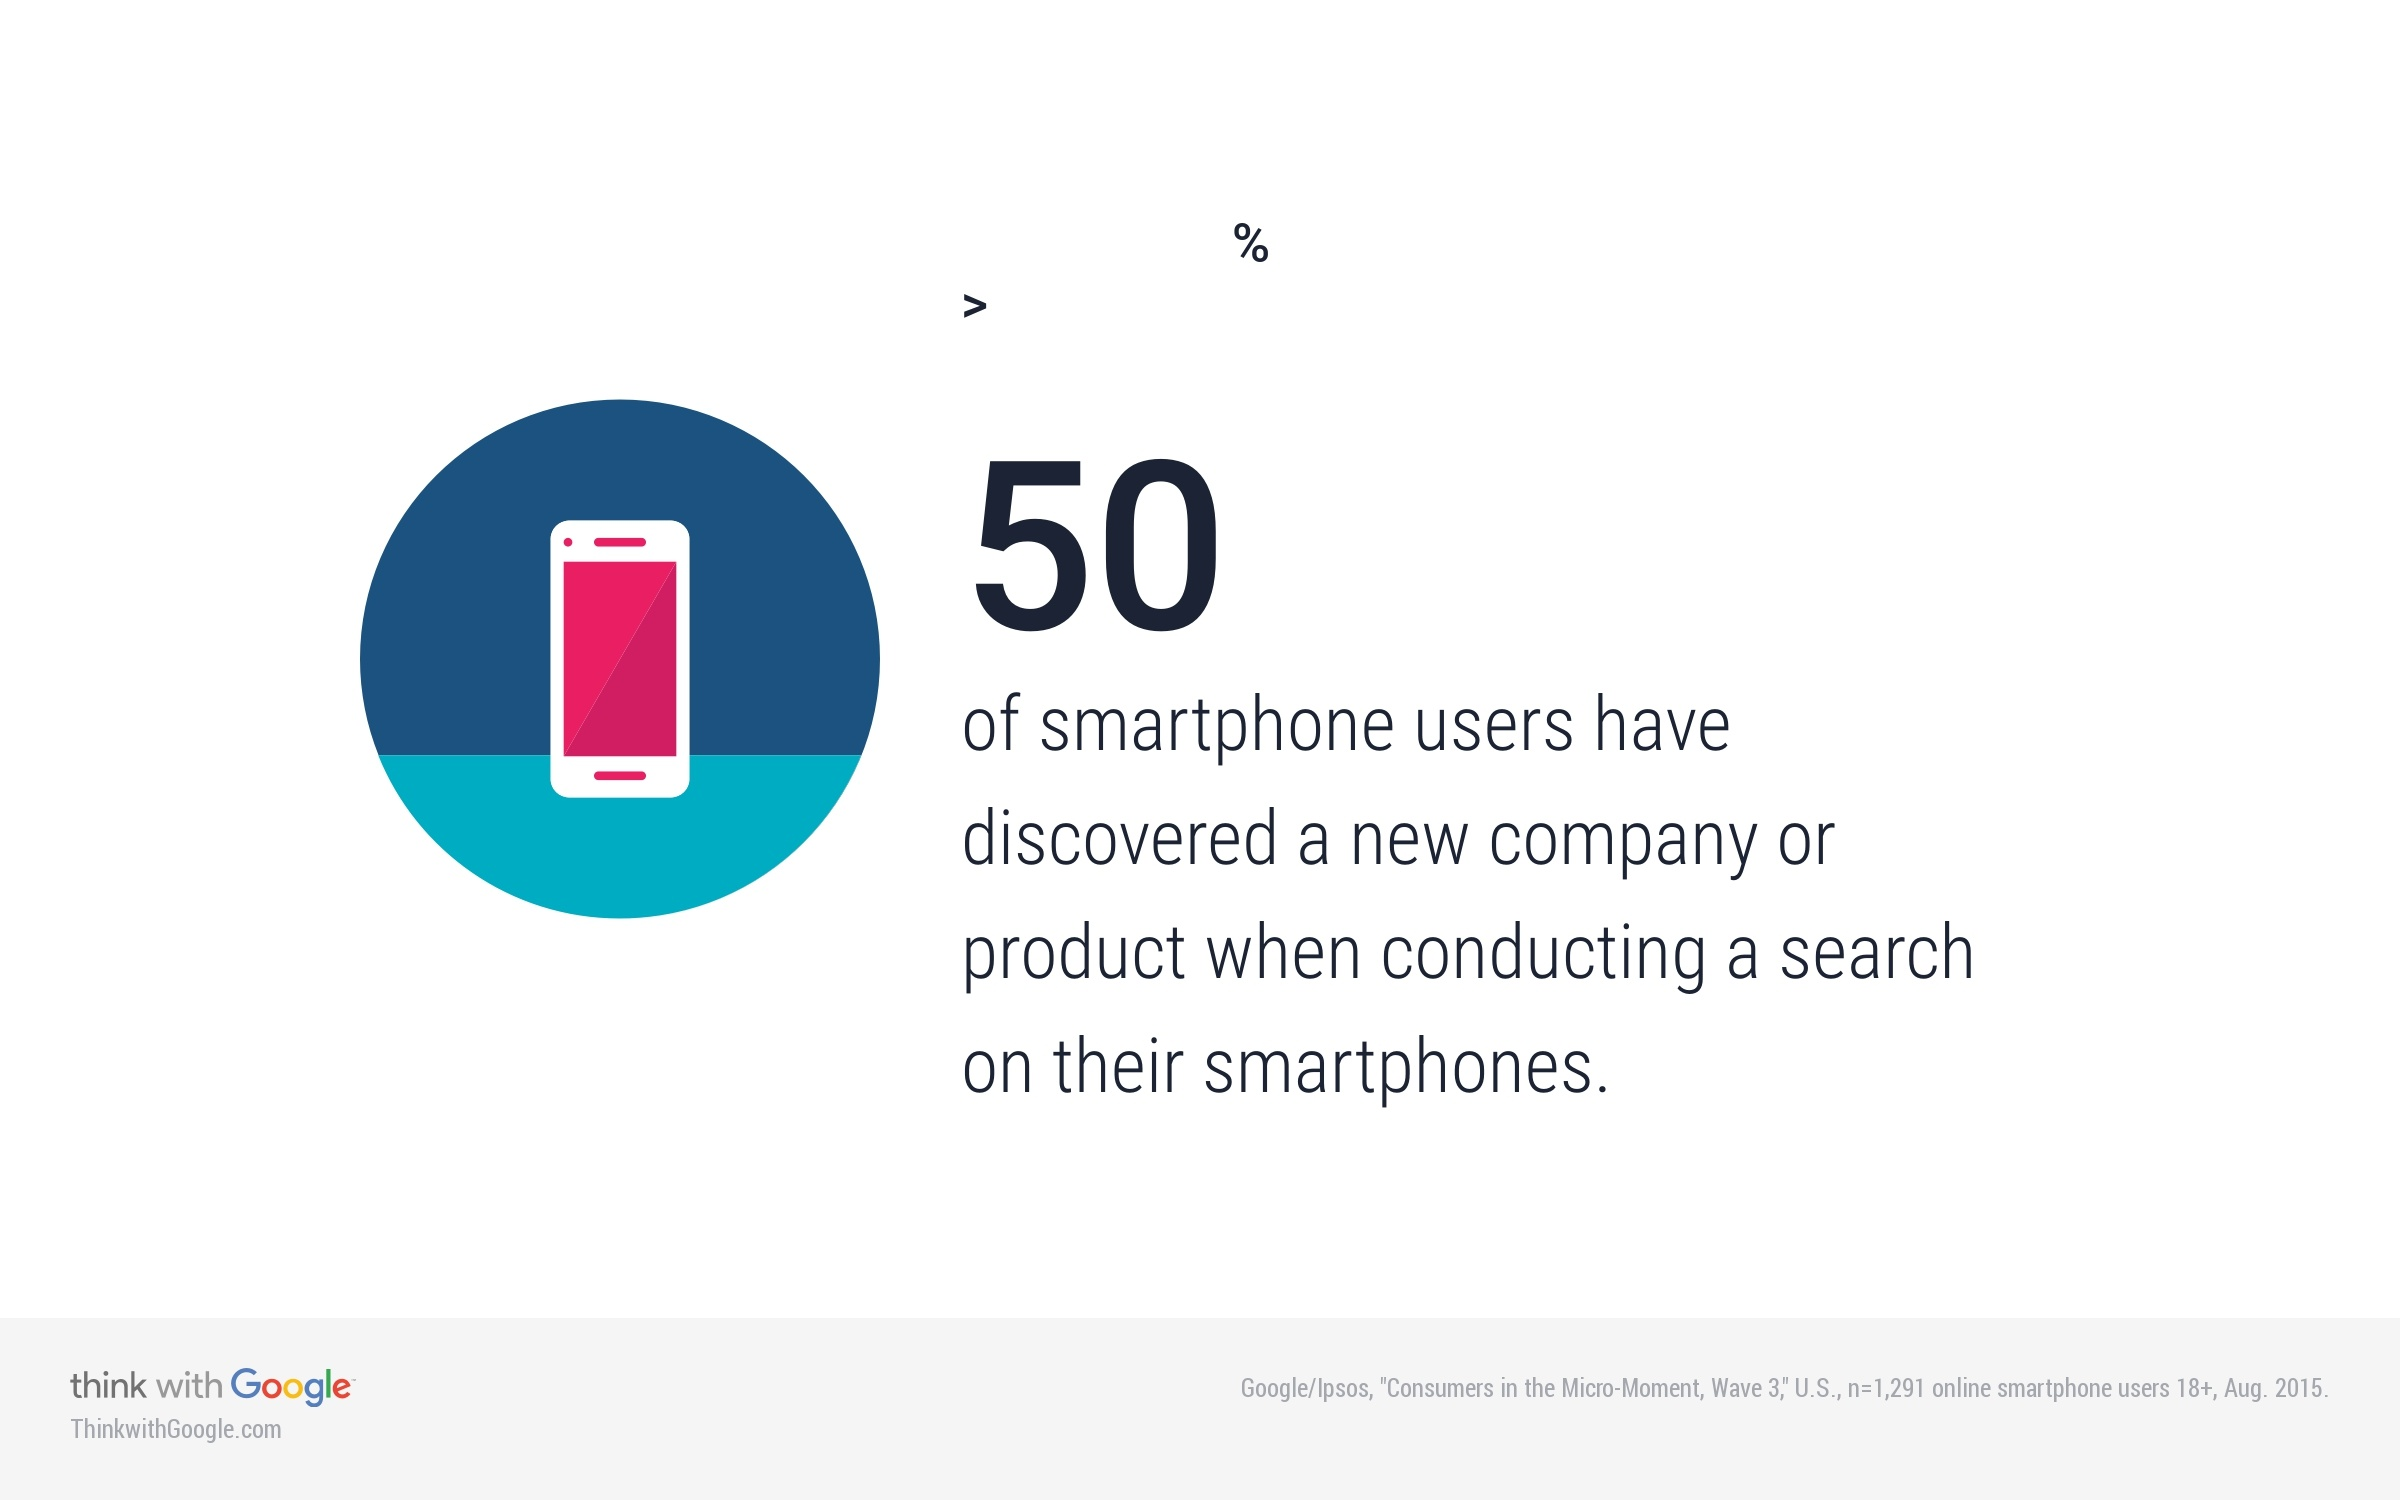 smartphone-users-new-company-searches.jpg